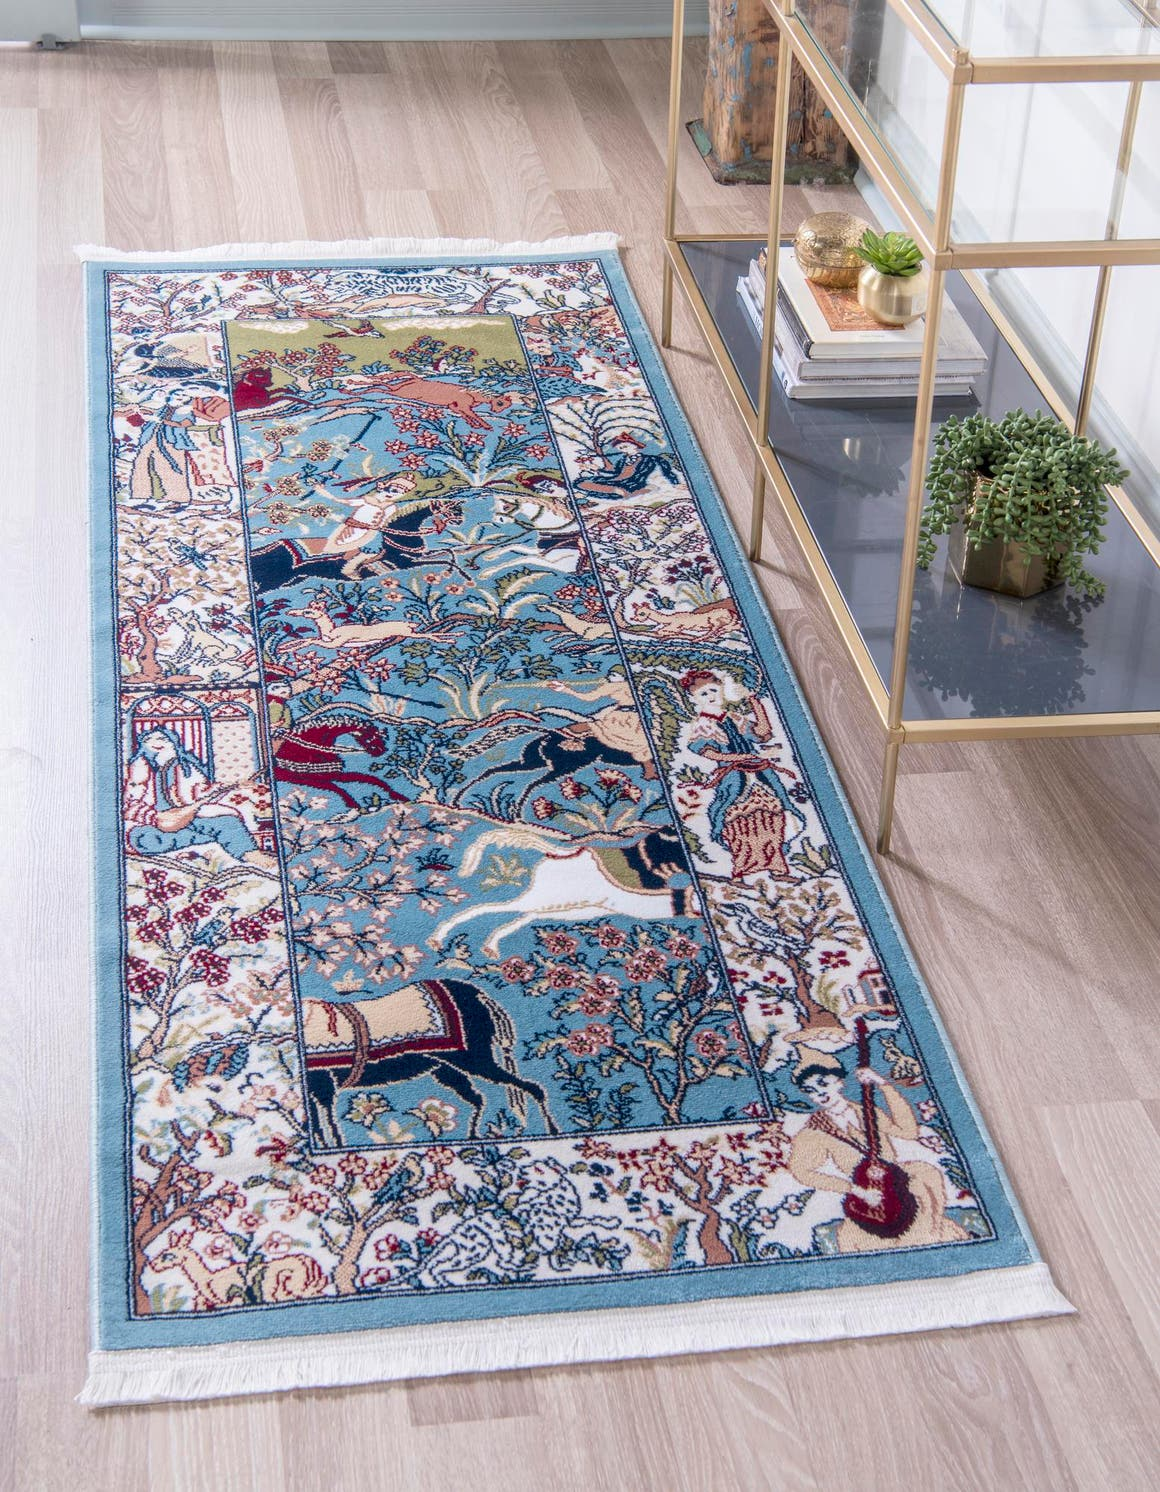 2' x 8' Nain Design Runner Rug main image